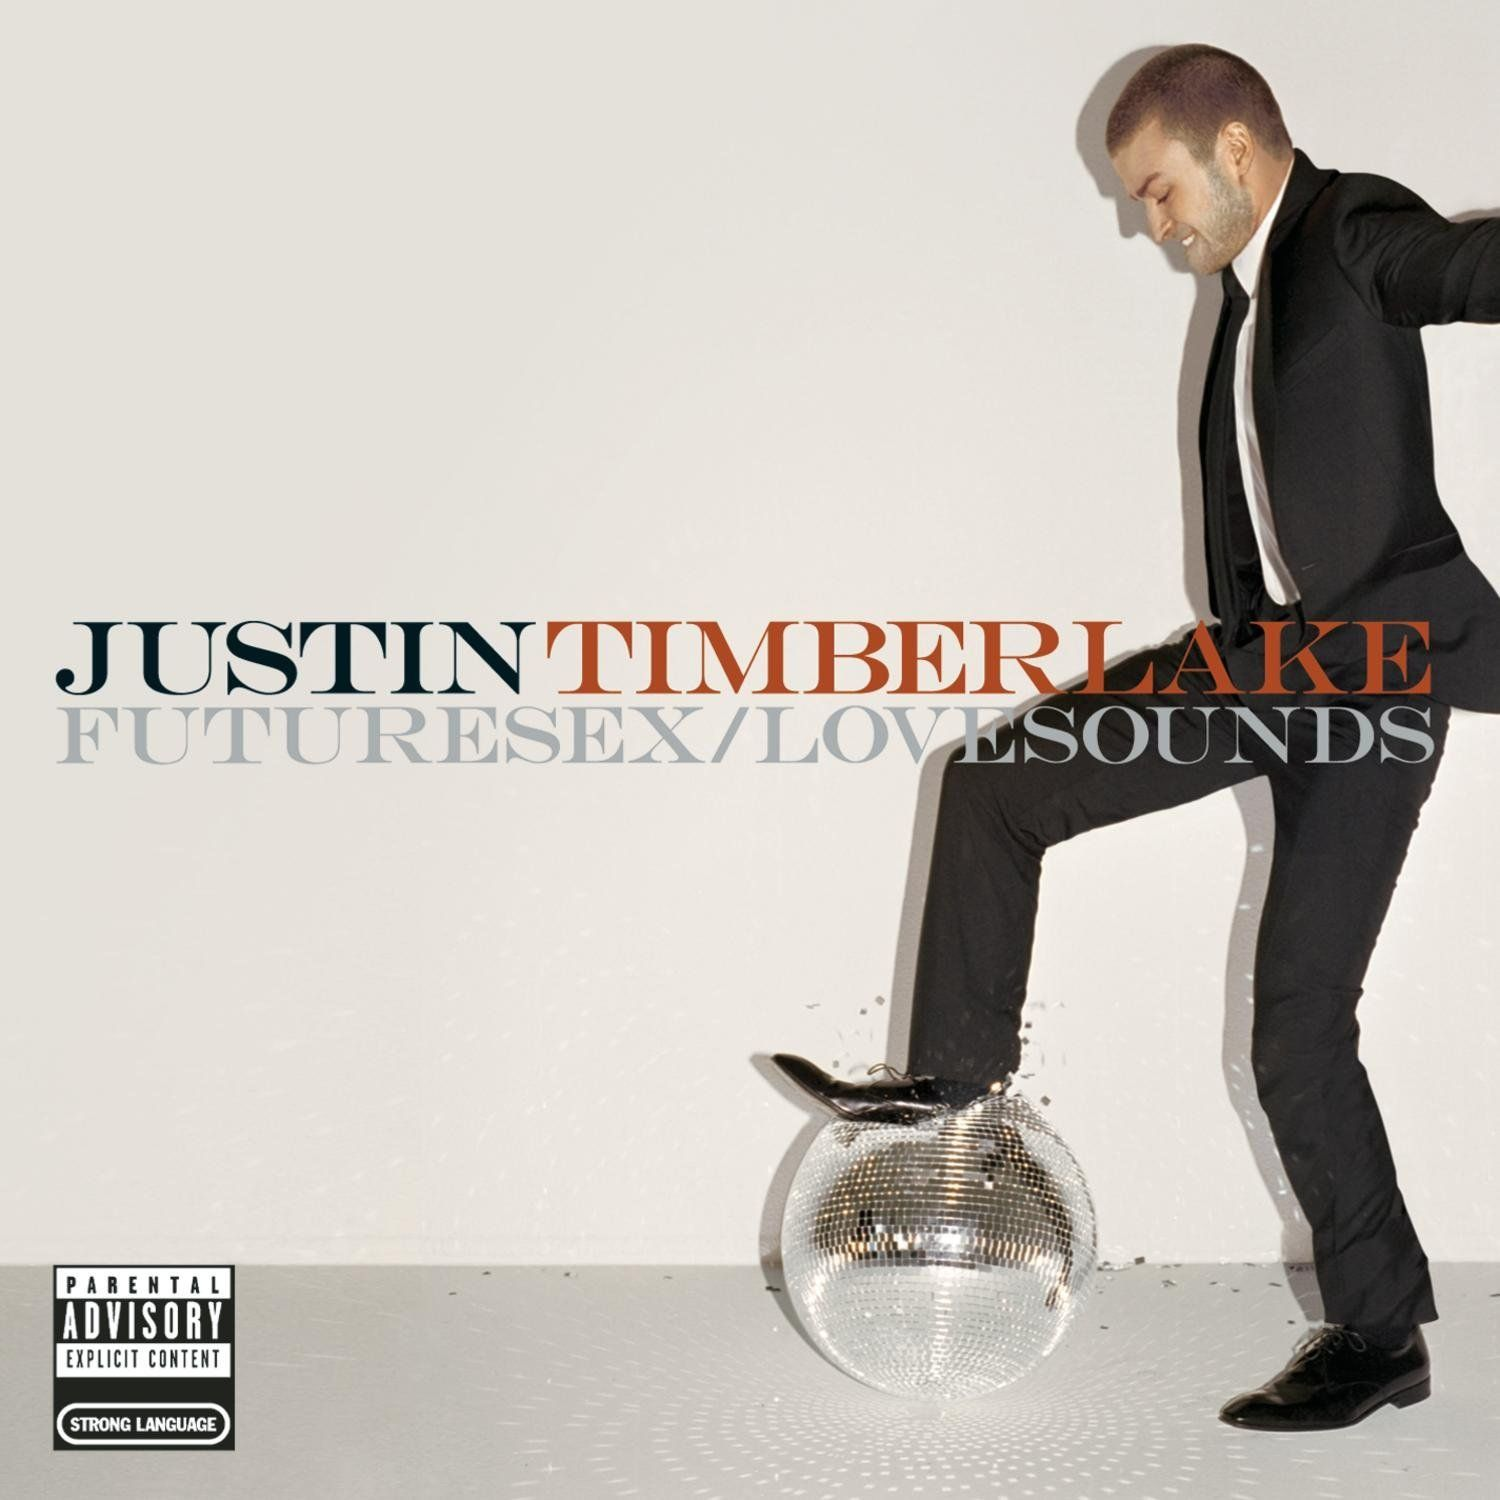 Futuresex Lovesounds Deluxe Version Justin Timberlake: Justin Timberlake - FutureSex/LoveSounds